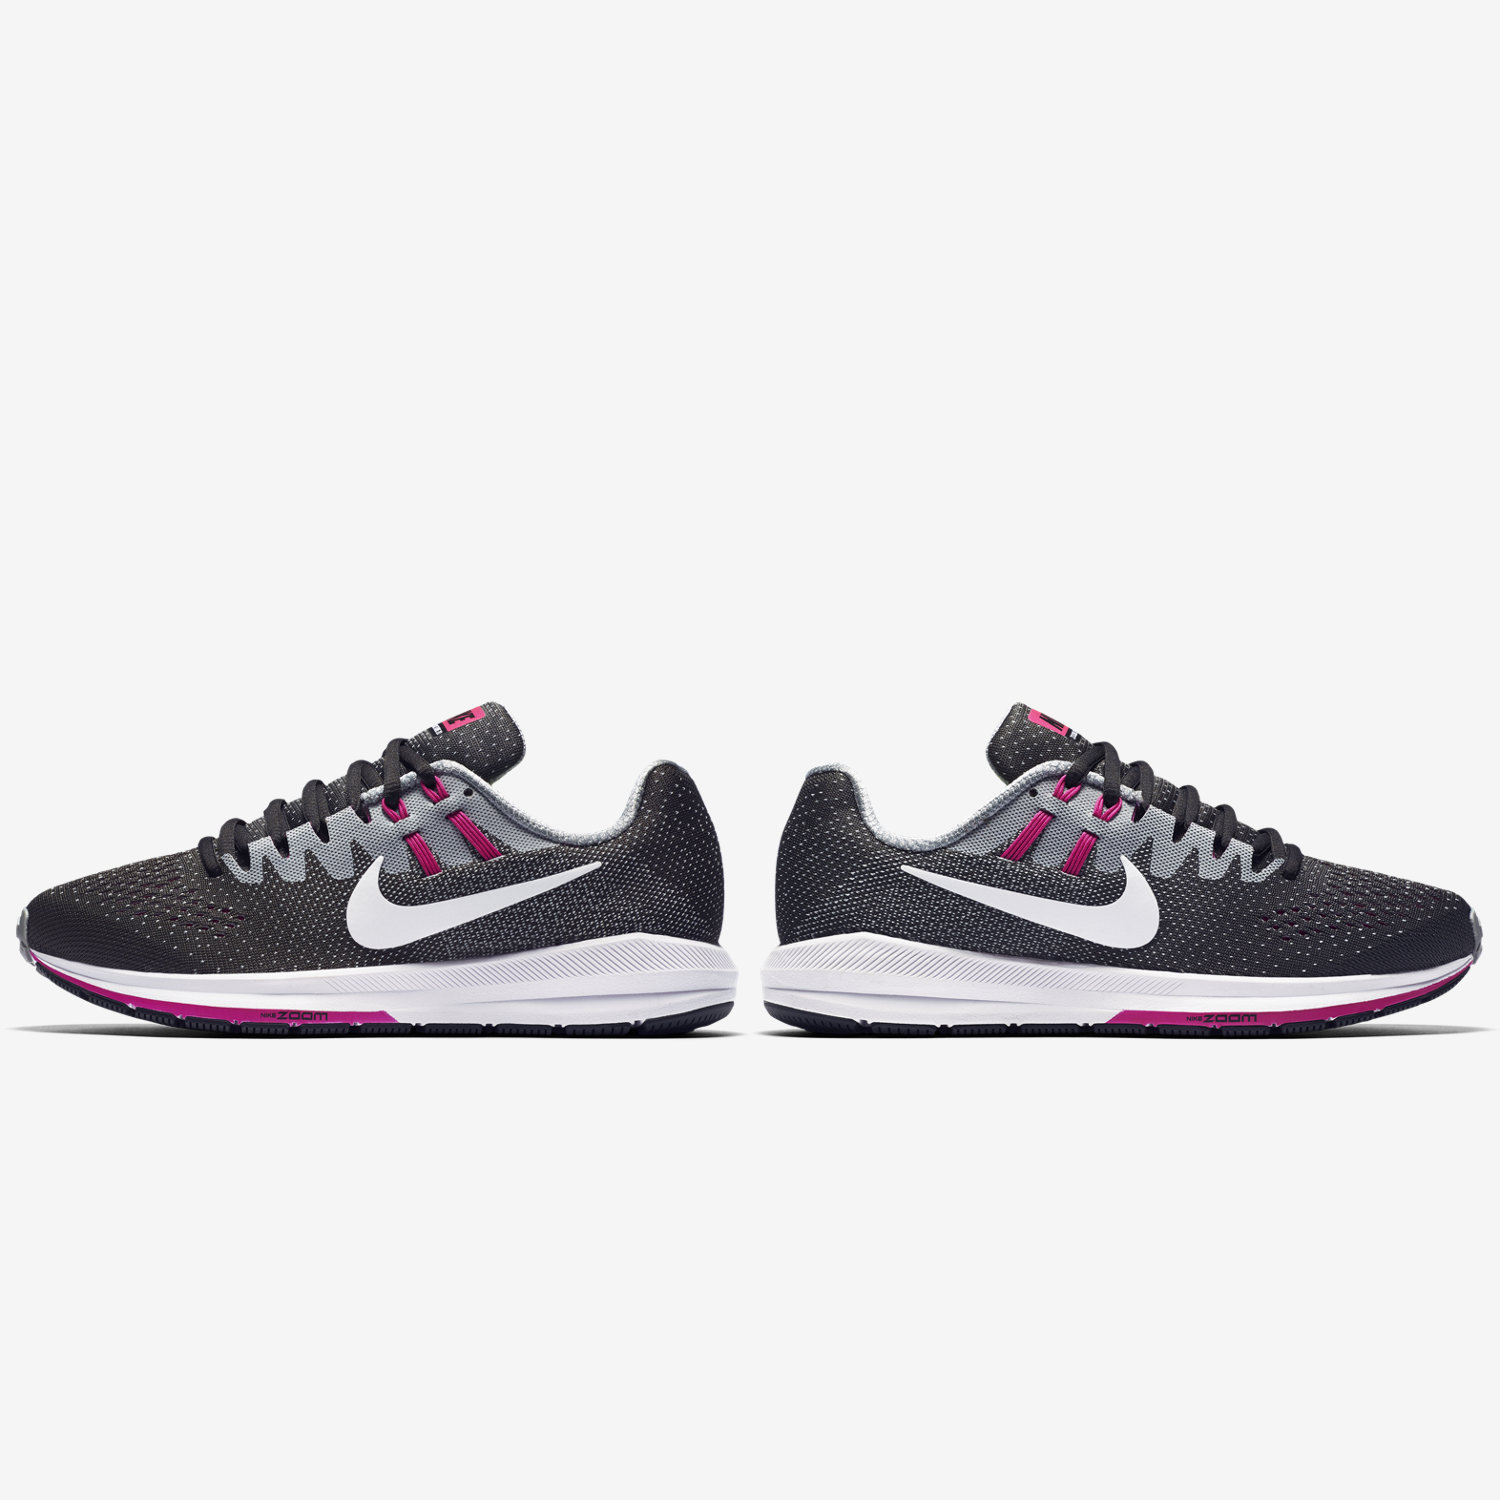 Nike Men's Air Zoom Pegasus 33 Black/White/Anthracite/Cl Grey